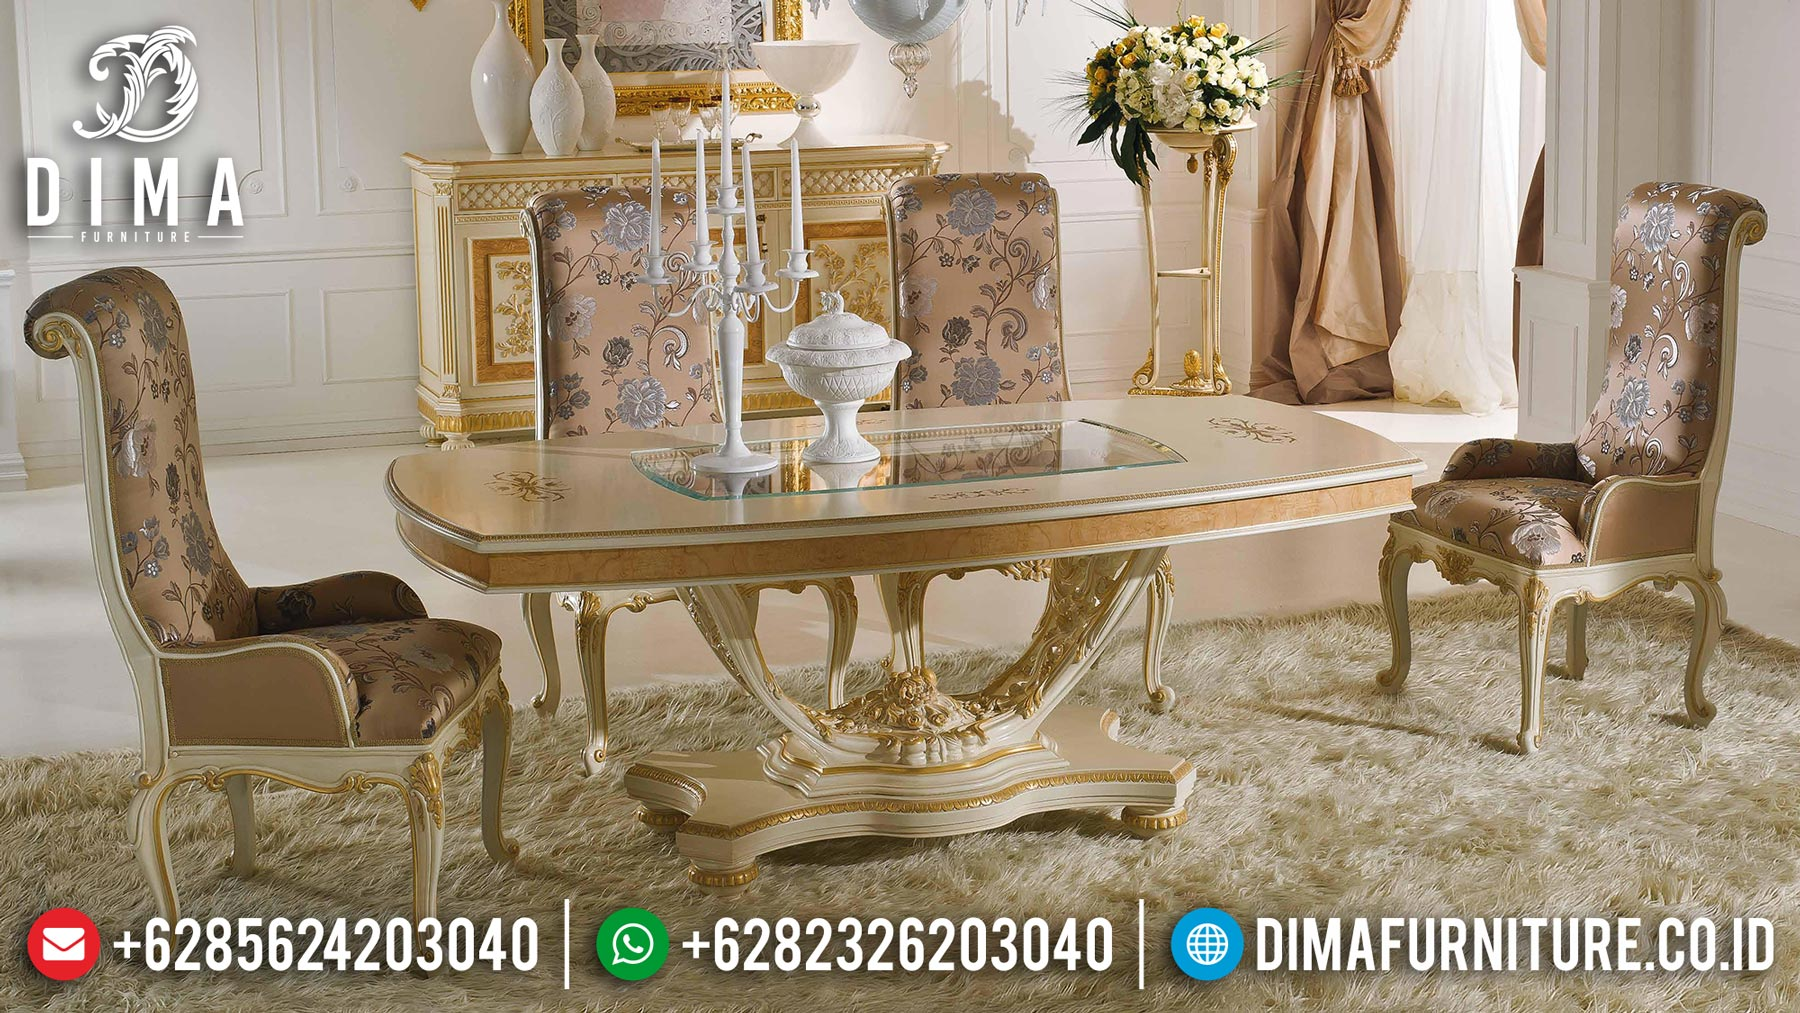 Meja Makan Mewah Ukiran Jepara Luxury Carving Perfect Color Combiantion ST-1121